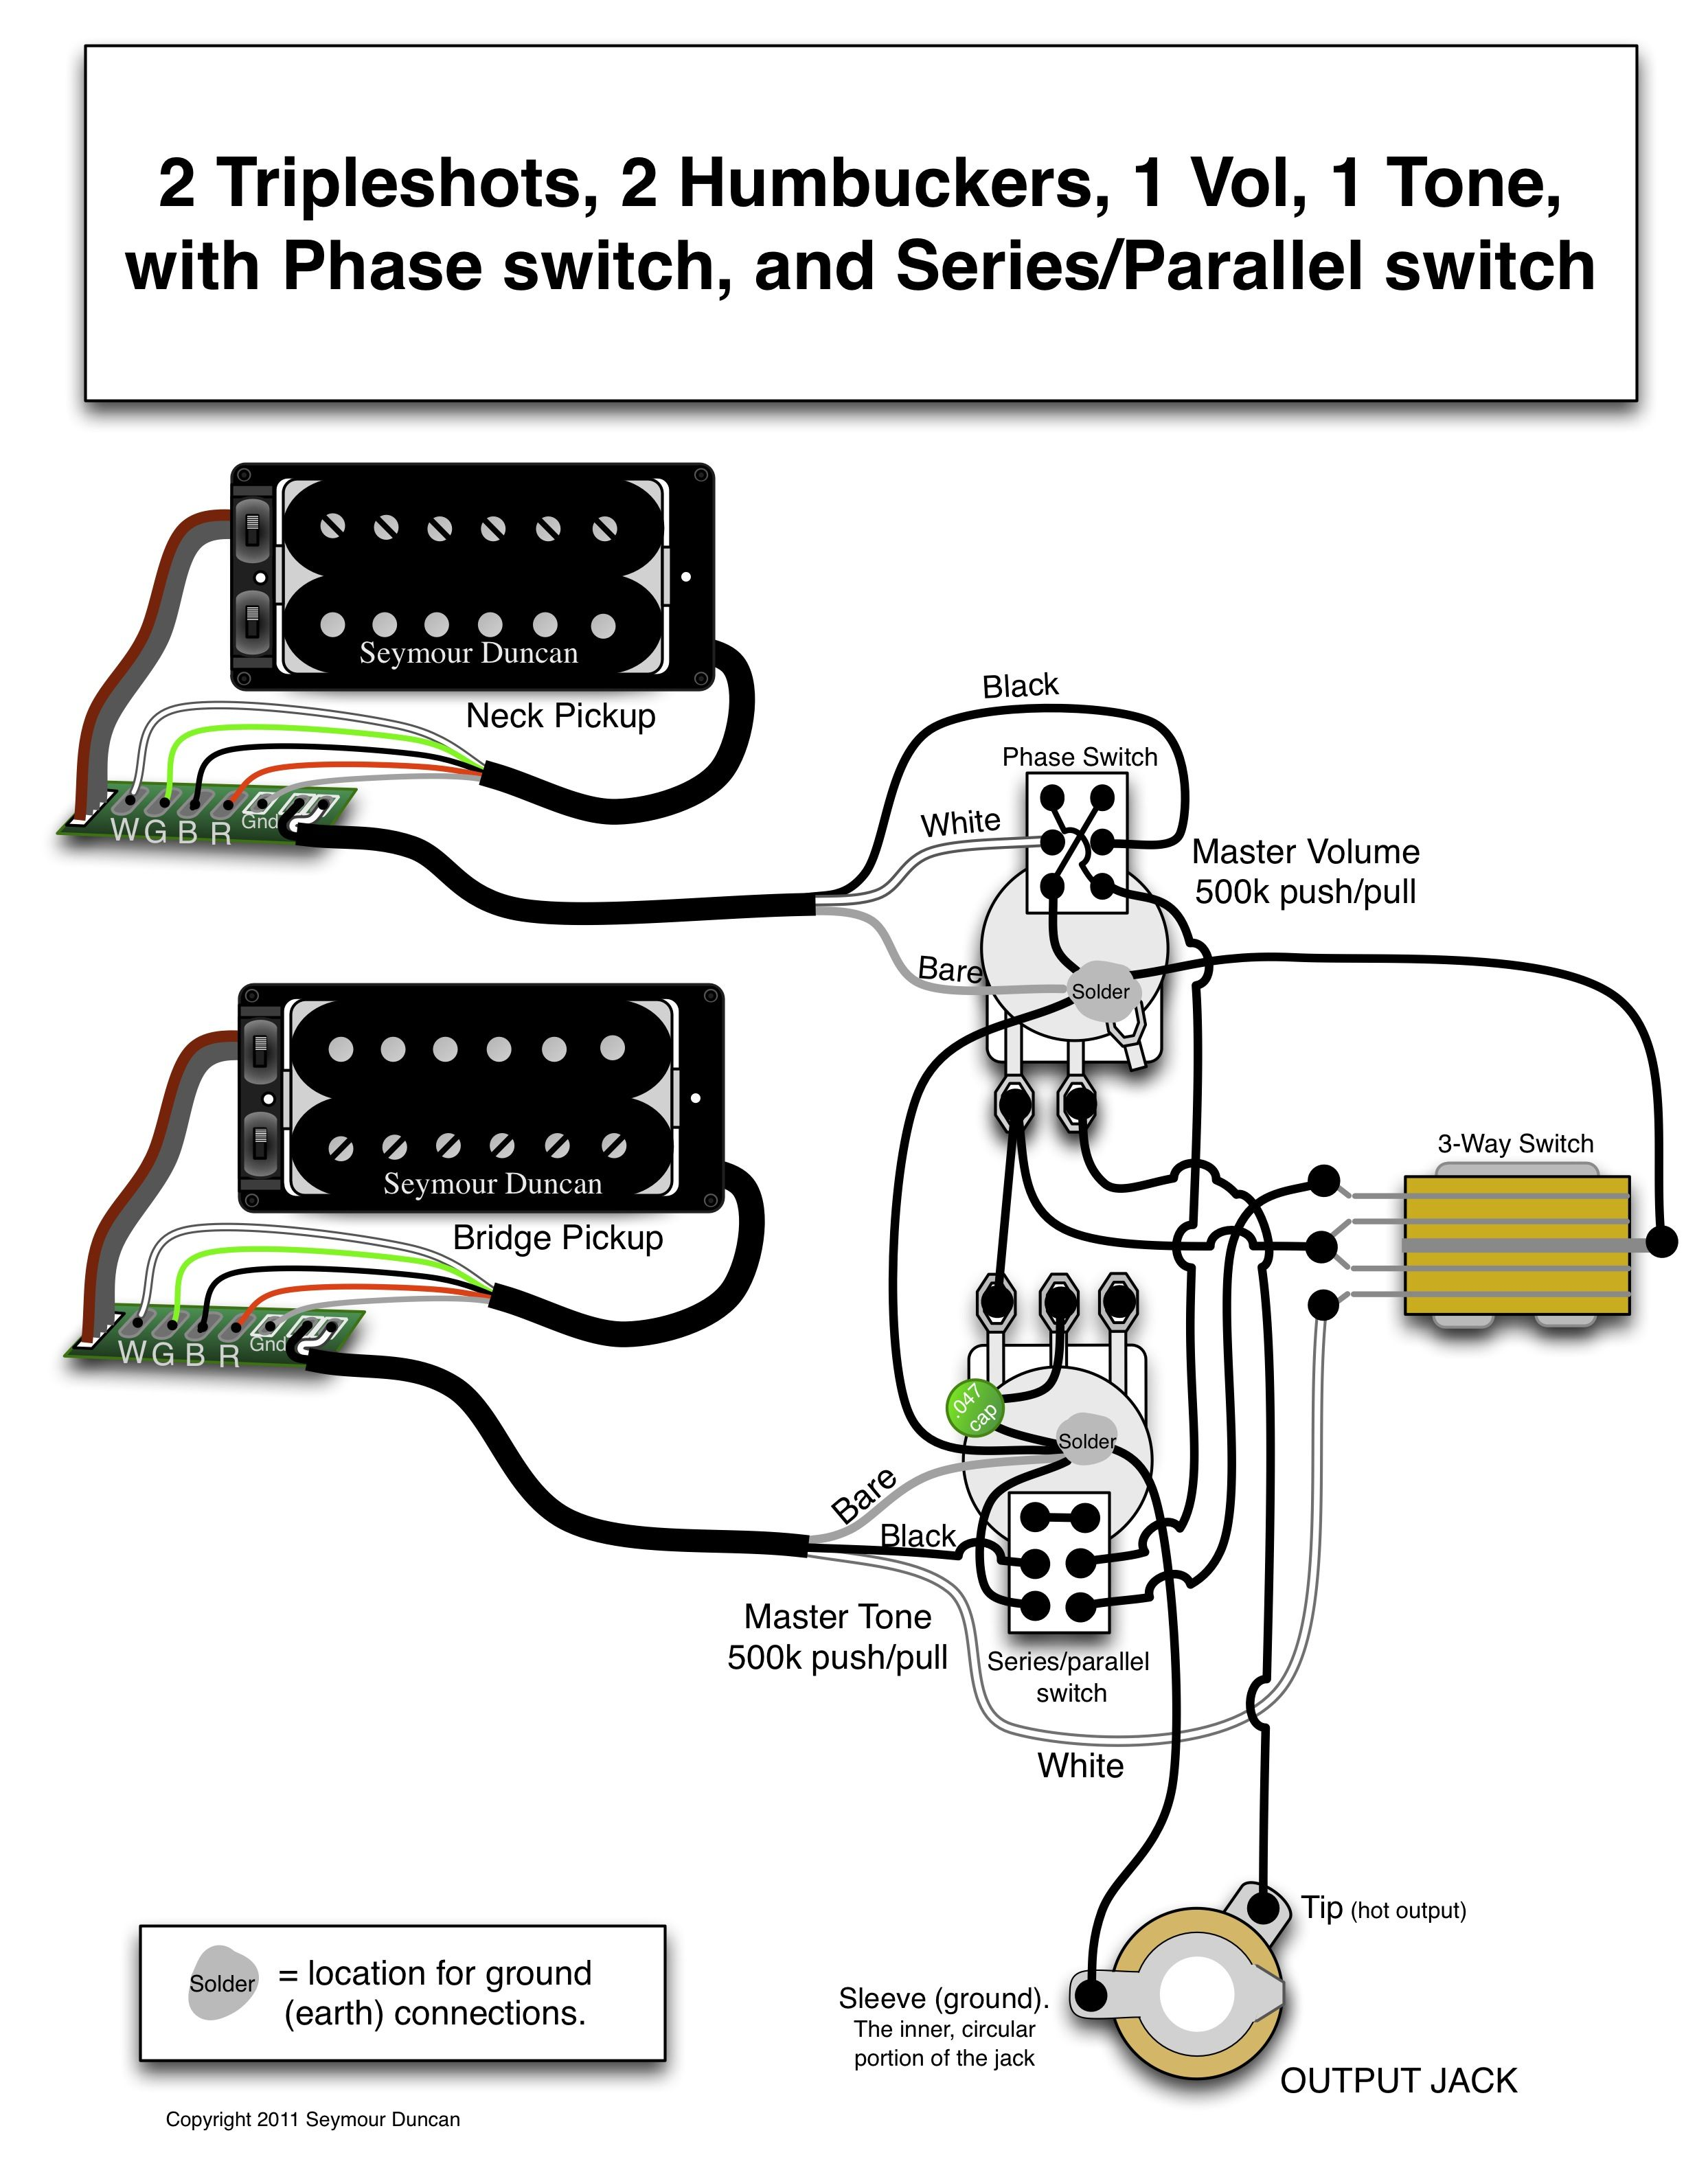 11e7a4ce932088841833425d14ebd2ea seymour duncan wiring diagram 2 triple shots, 2 humbuckers, 1 spin-a-split wiring diagram at edmiracle.co